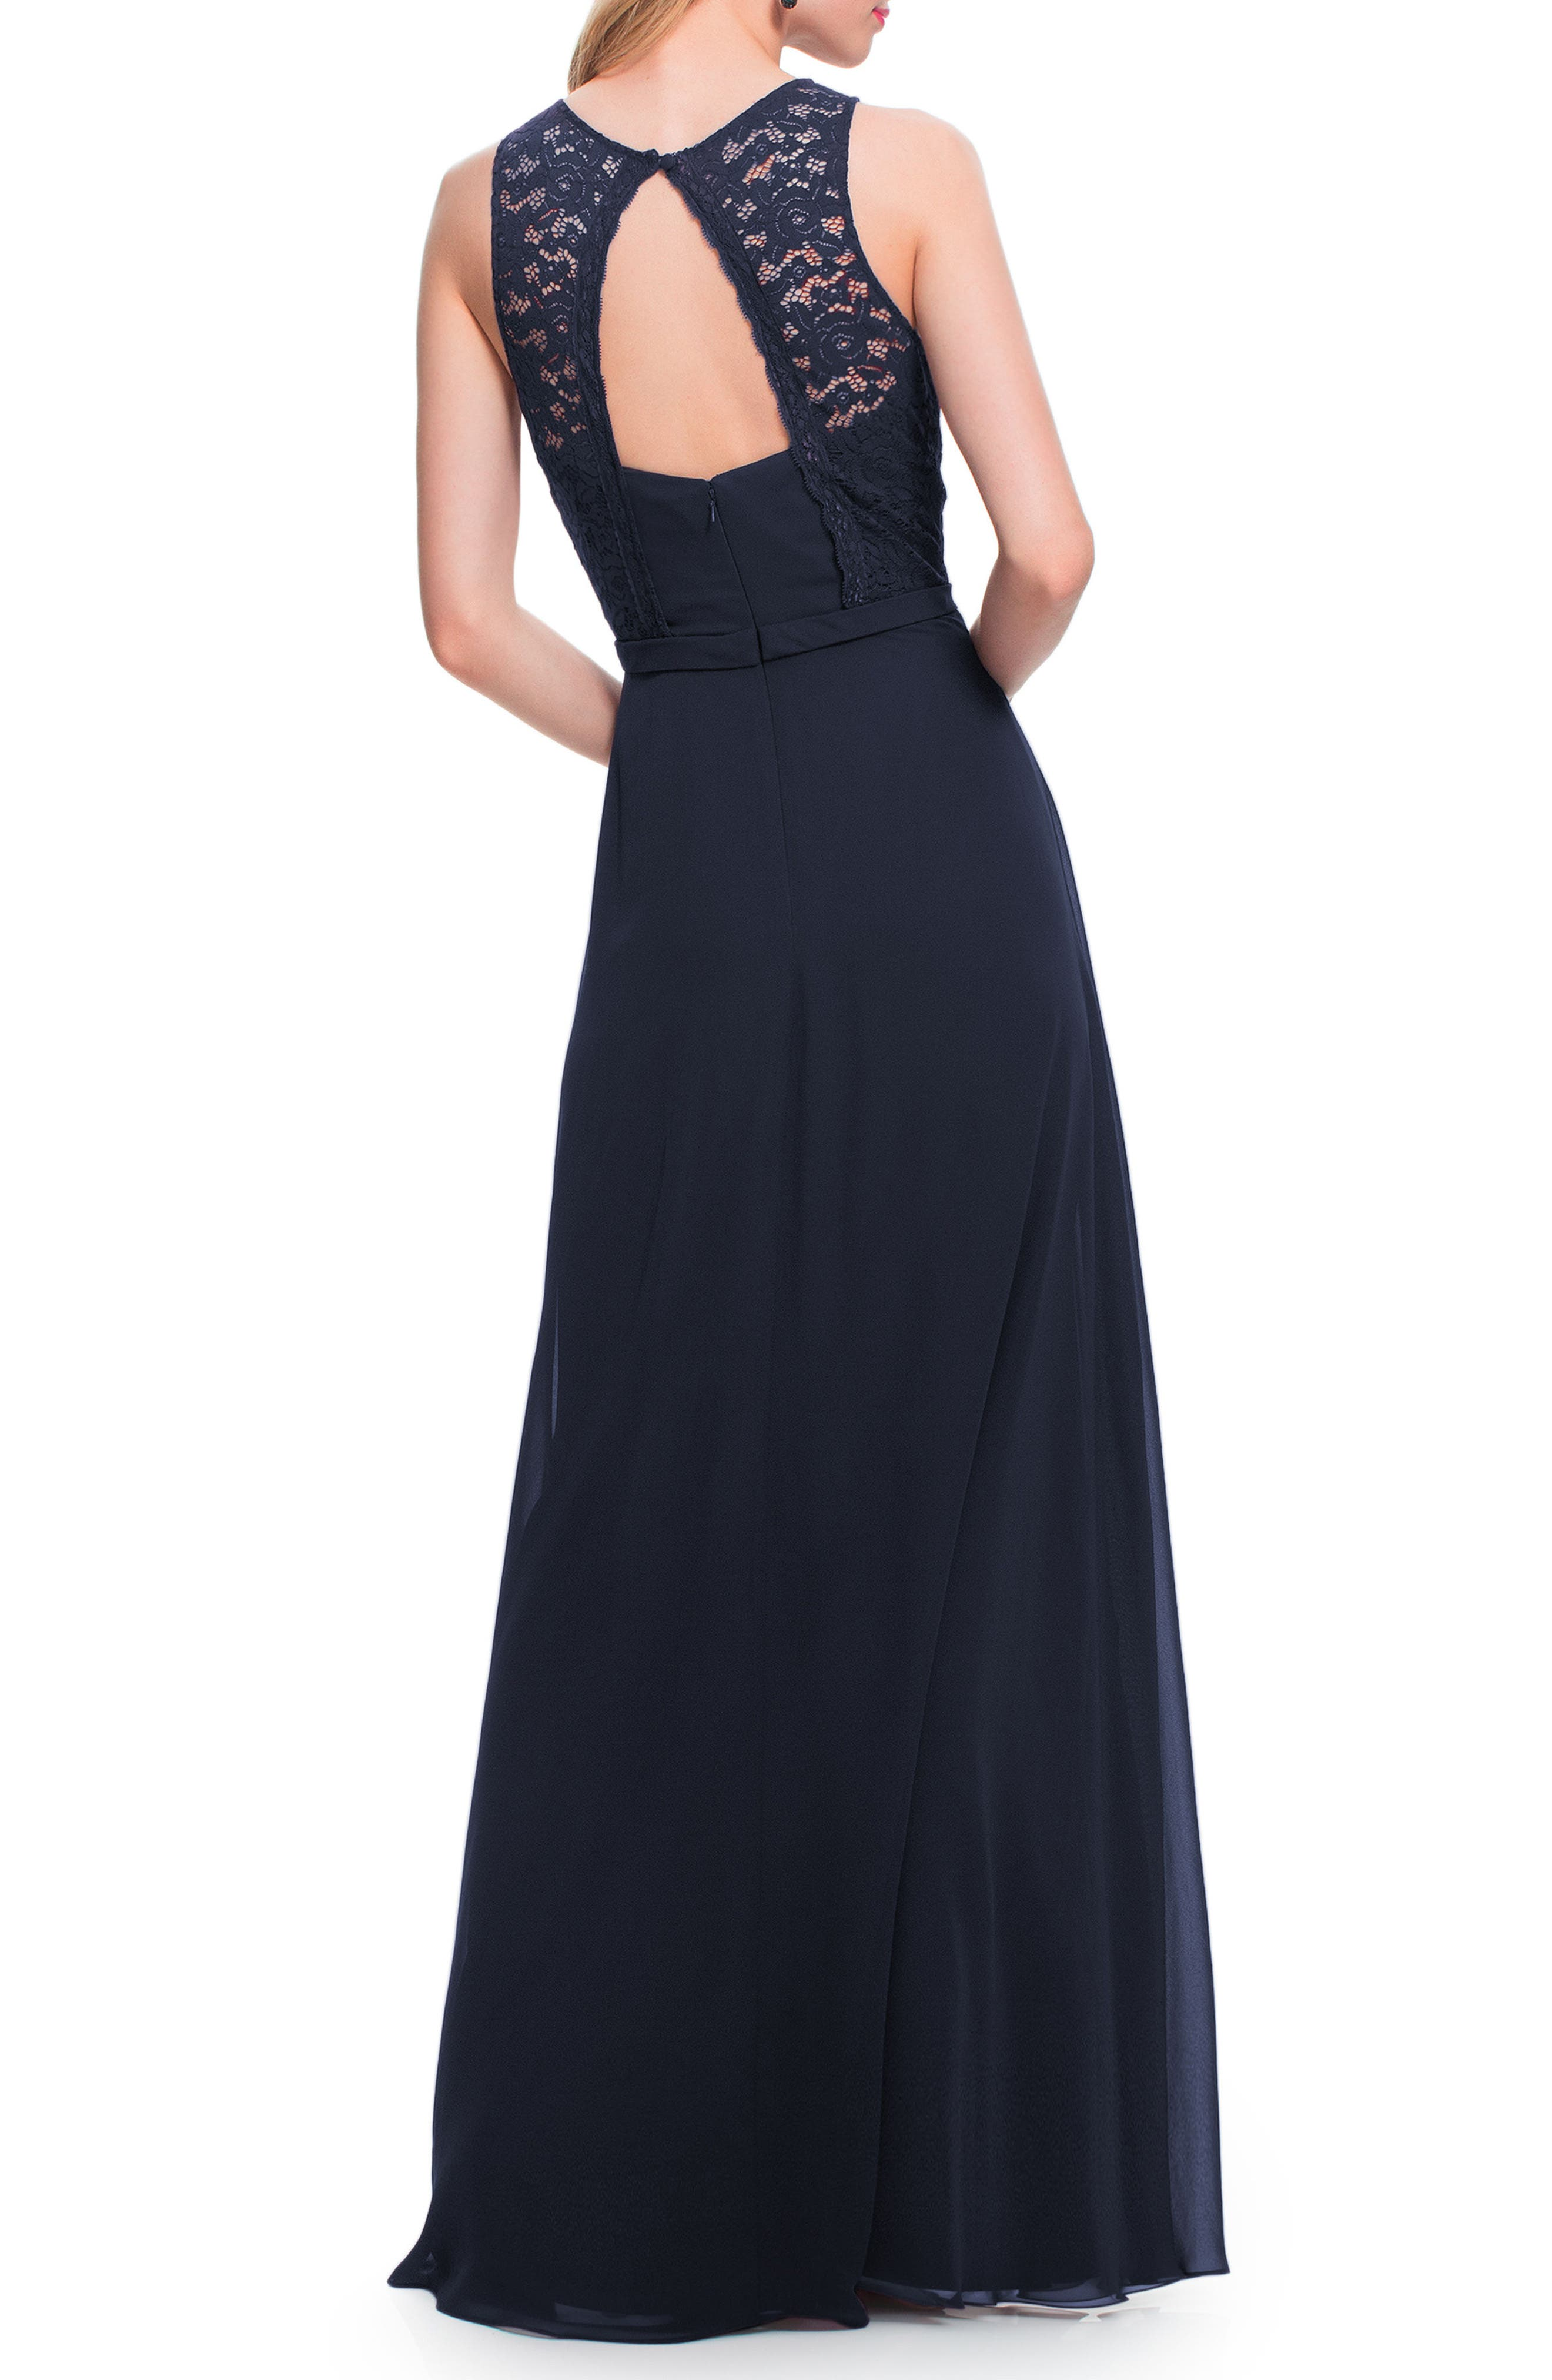 #LEVKOFF, Lace Bodice Chiffon Gown, Alternate thumbnail 2, color, NAVY